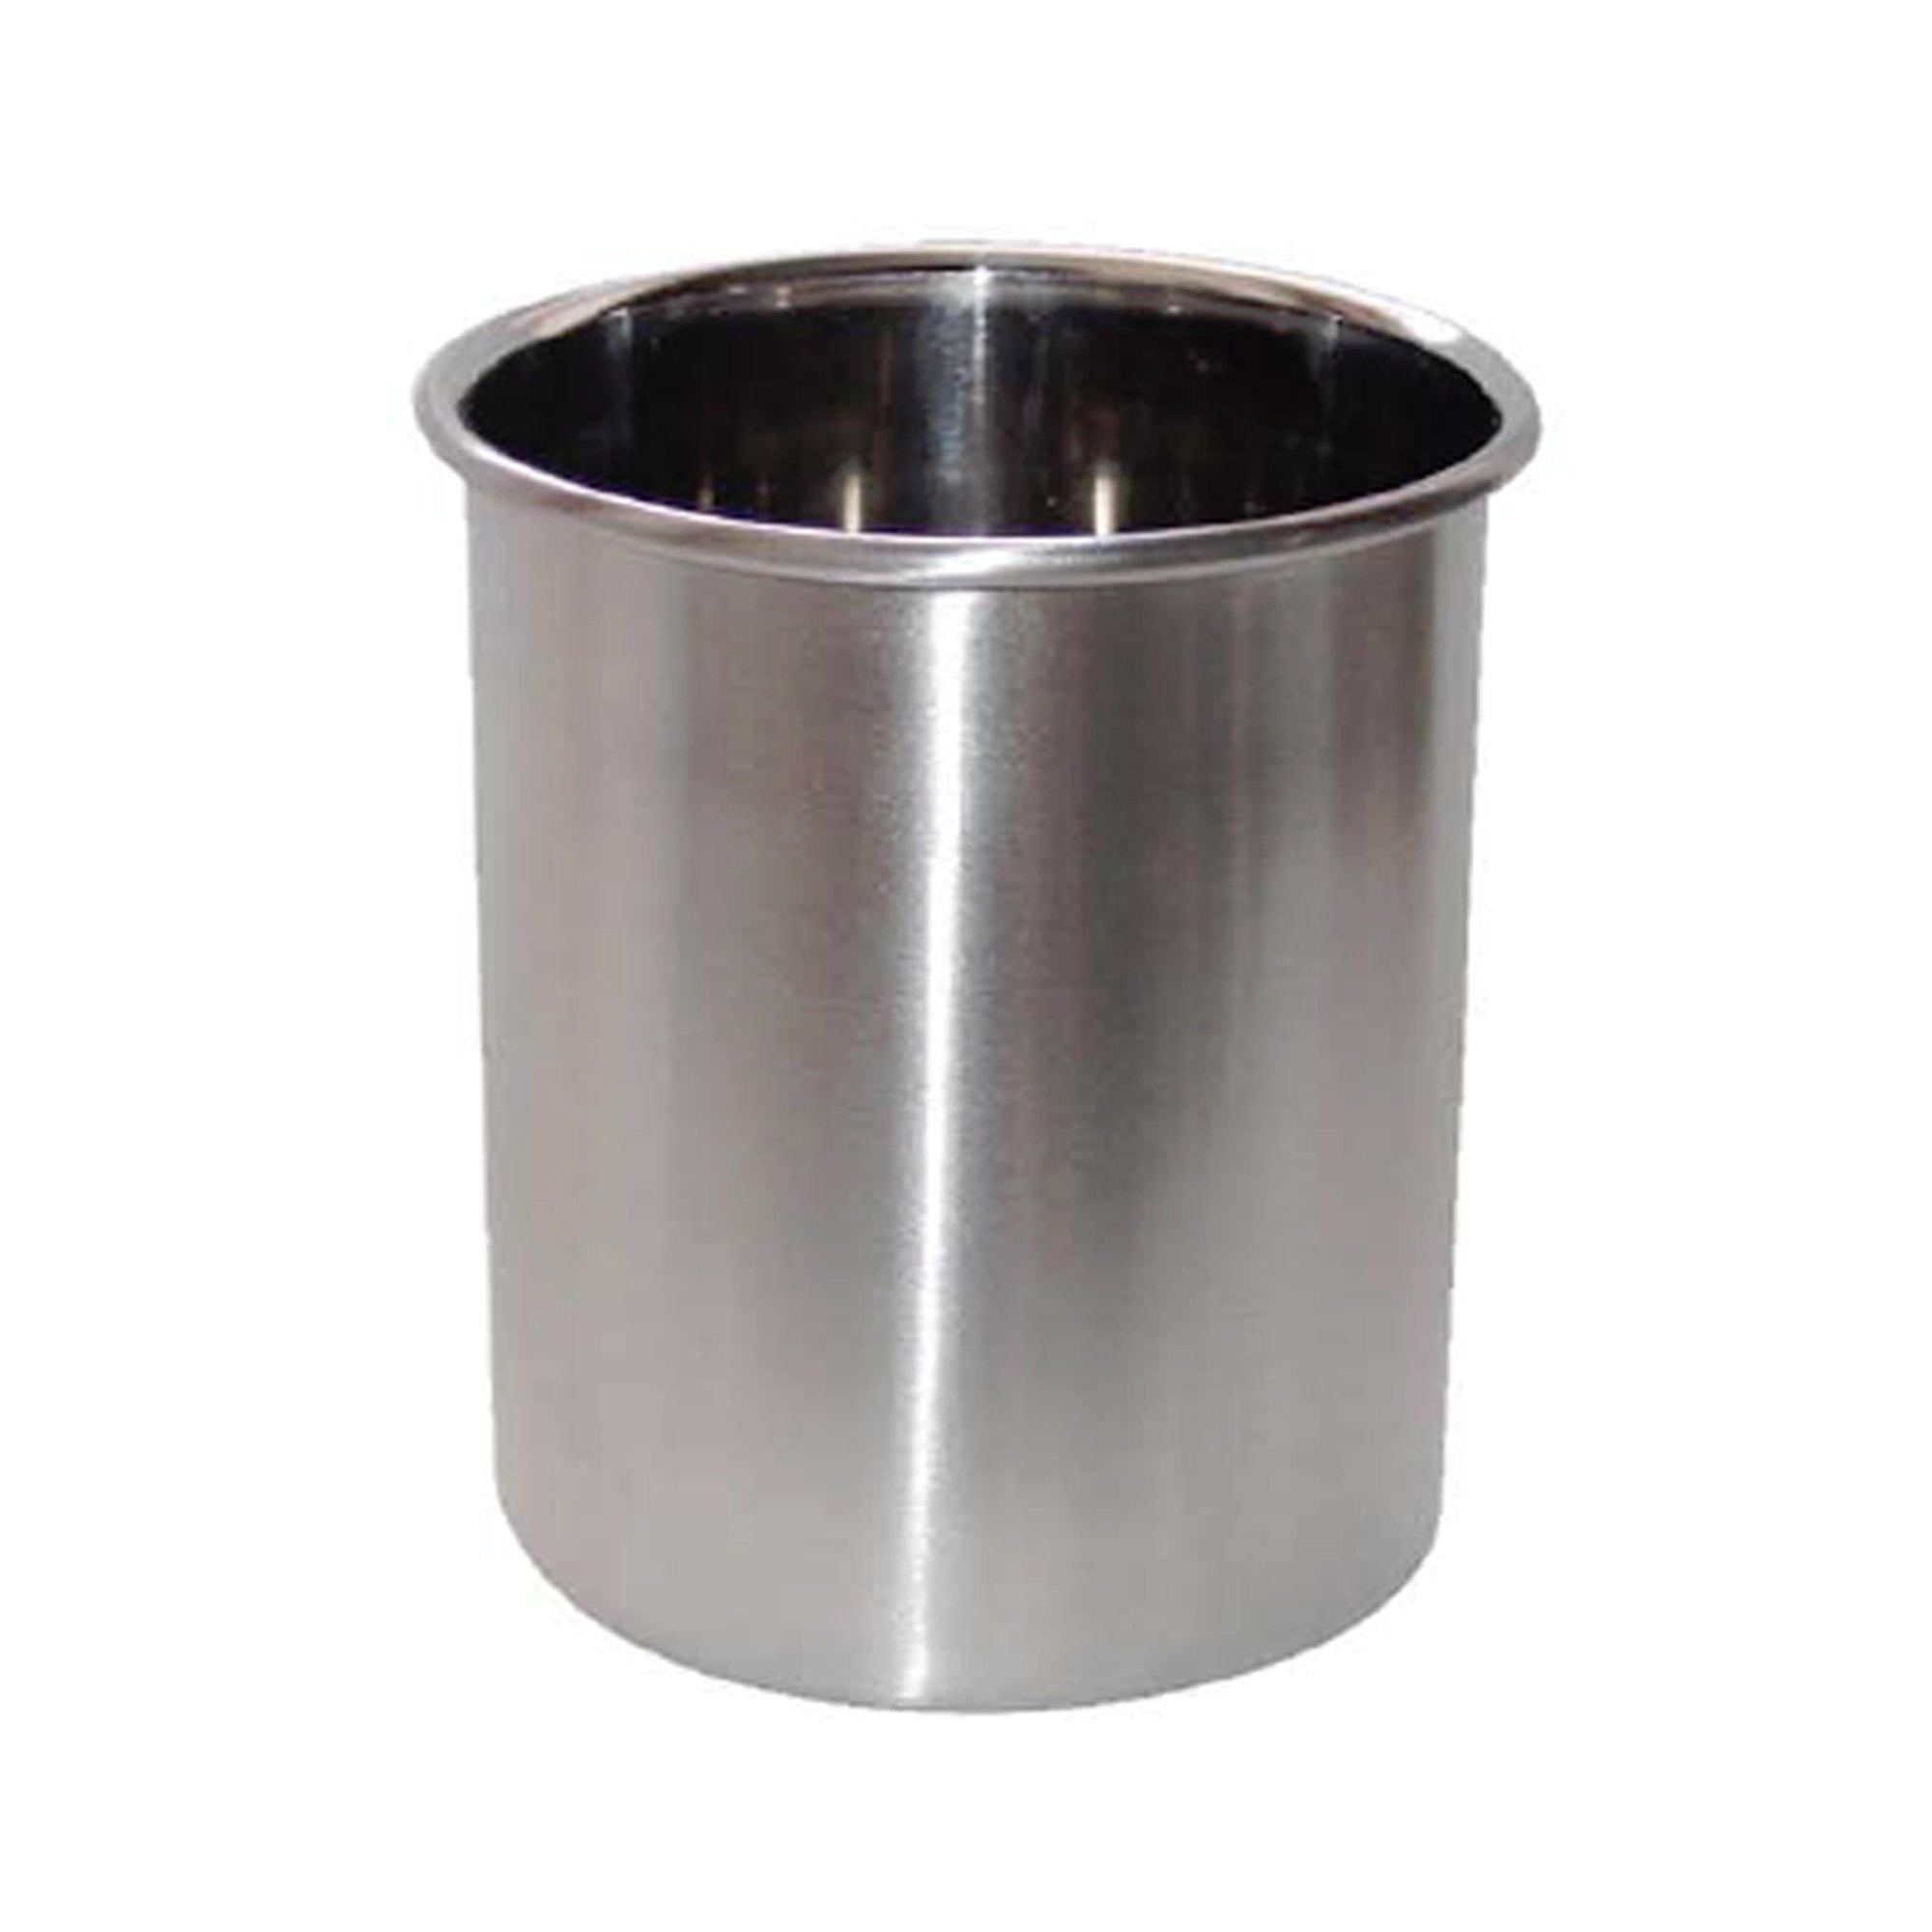 Great nu steel tg uh 8 utensils holder brushed 4 qtr plain 7 5 h x 7 5 w x 7 5 d